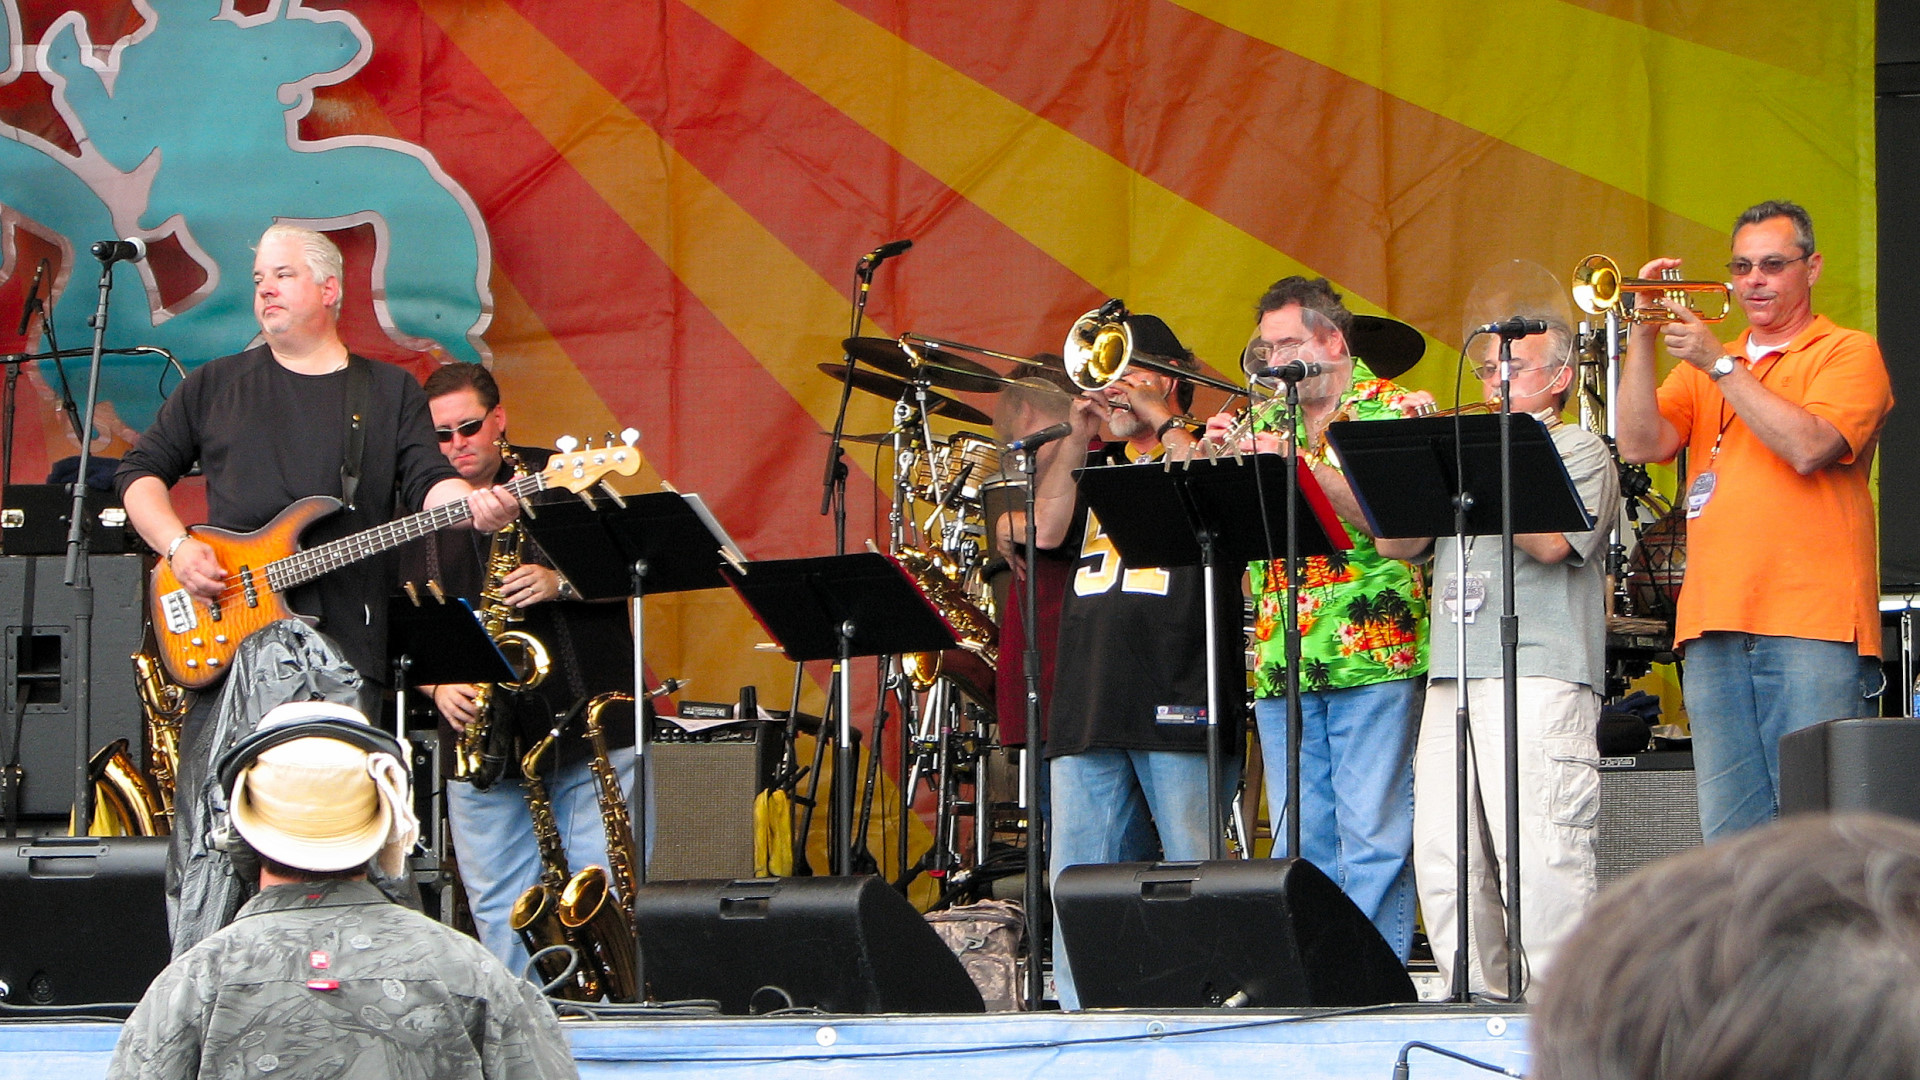 Chris Cambell on bass with the Wiseguys horn section